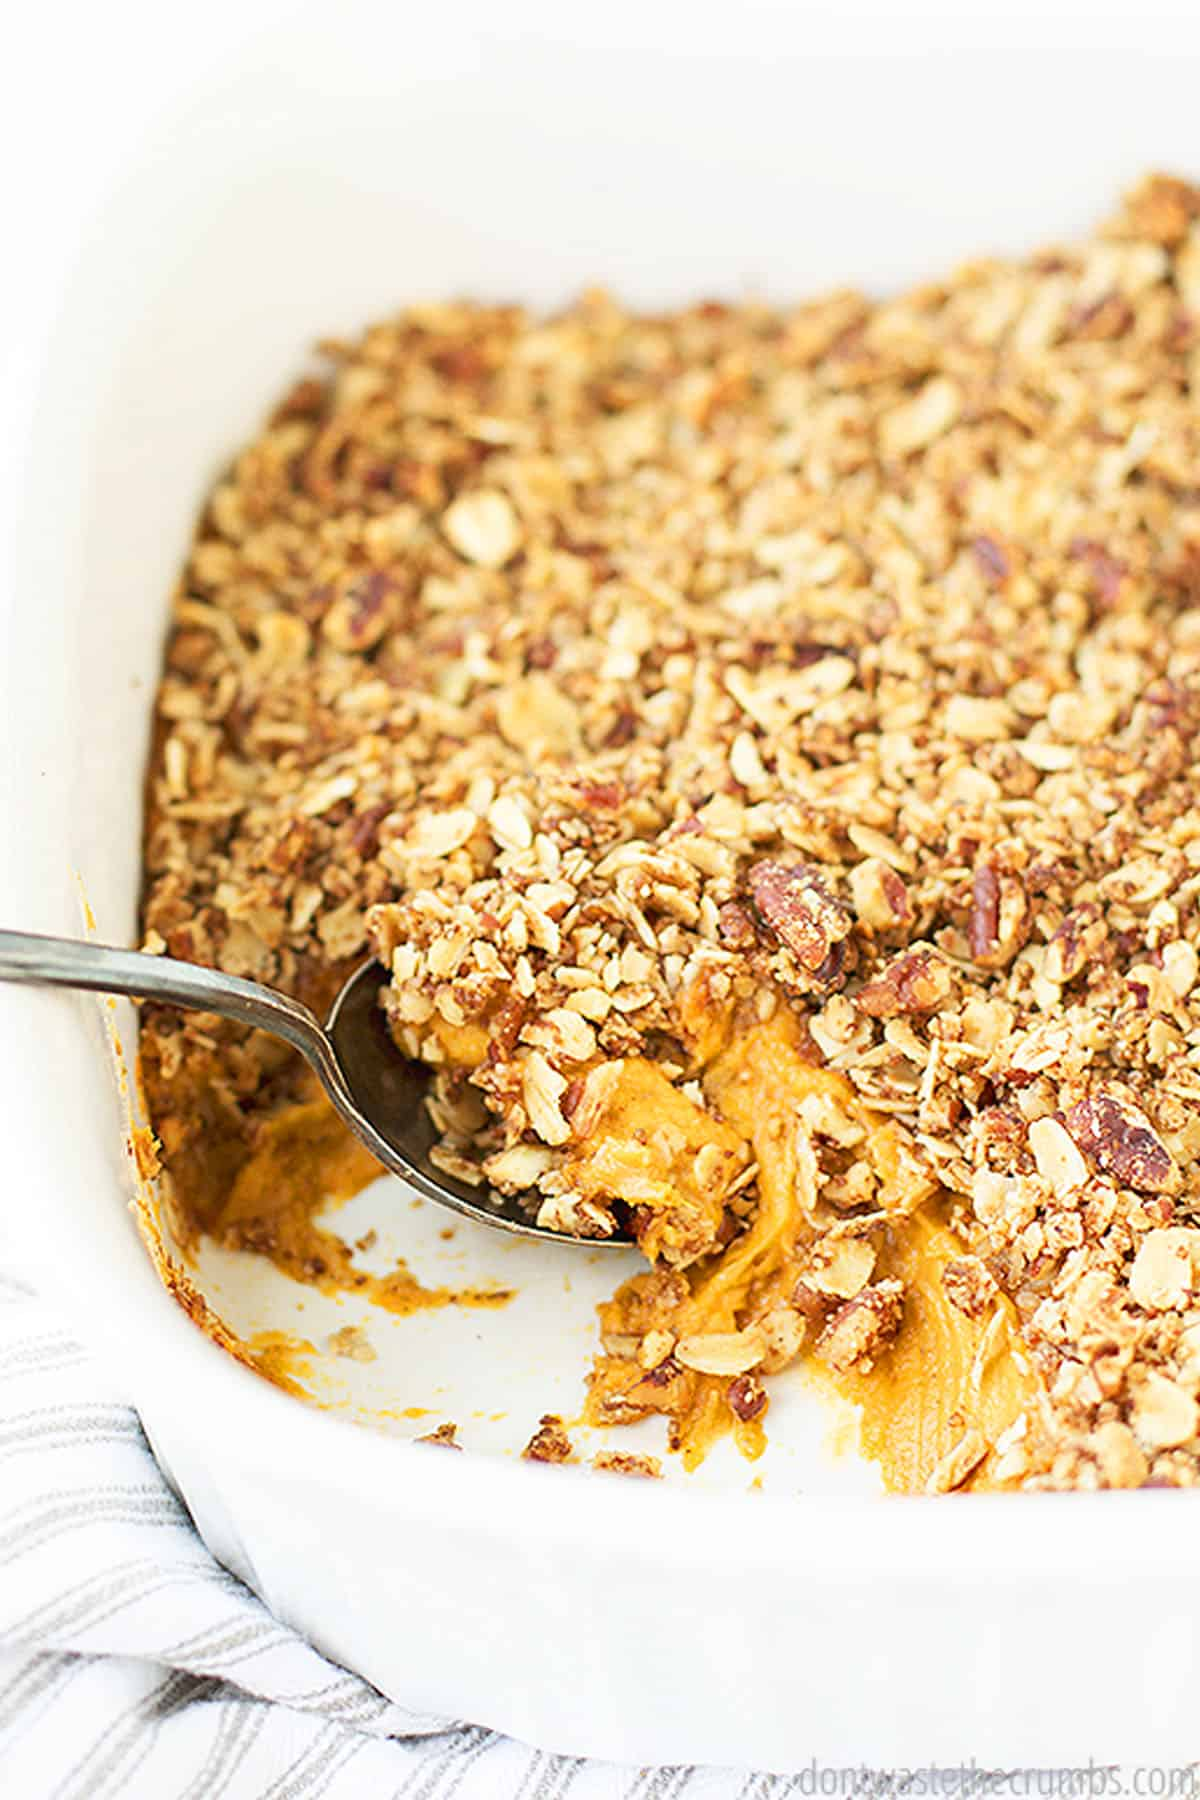 A freshly baked sweet potato casserole with nut topping. Ground flax seeds are used as an egg replacer in this recipe.